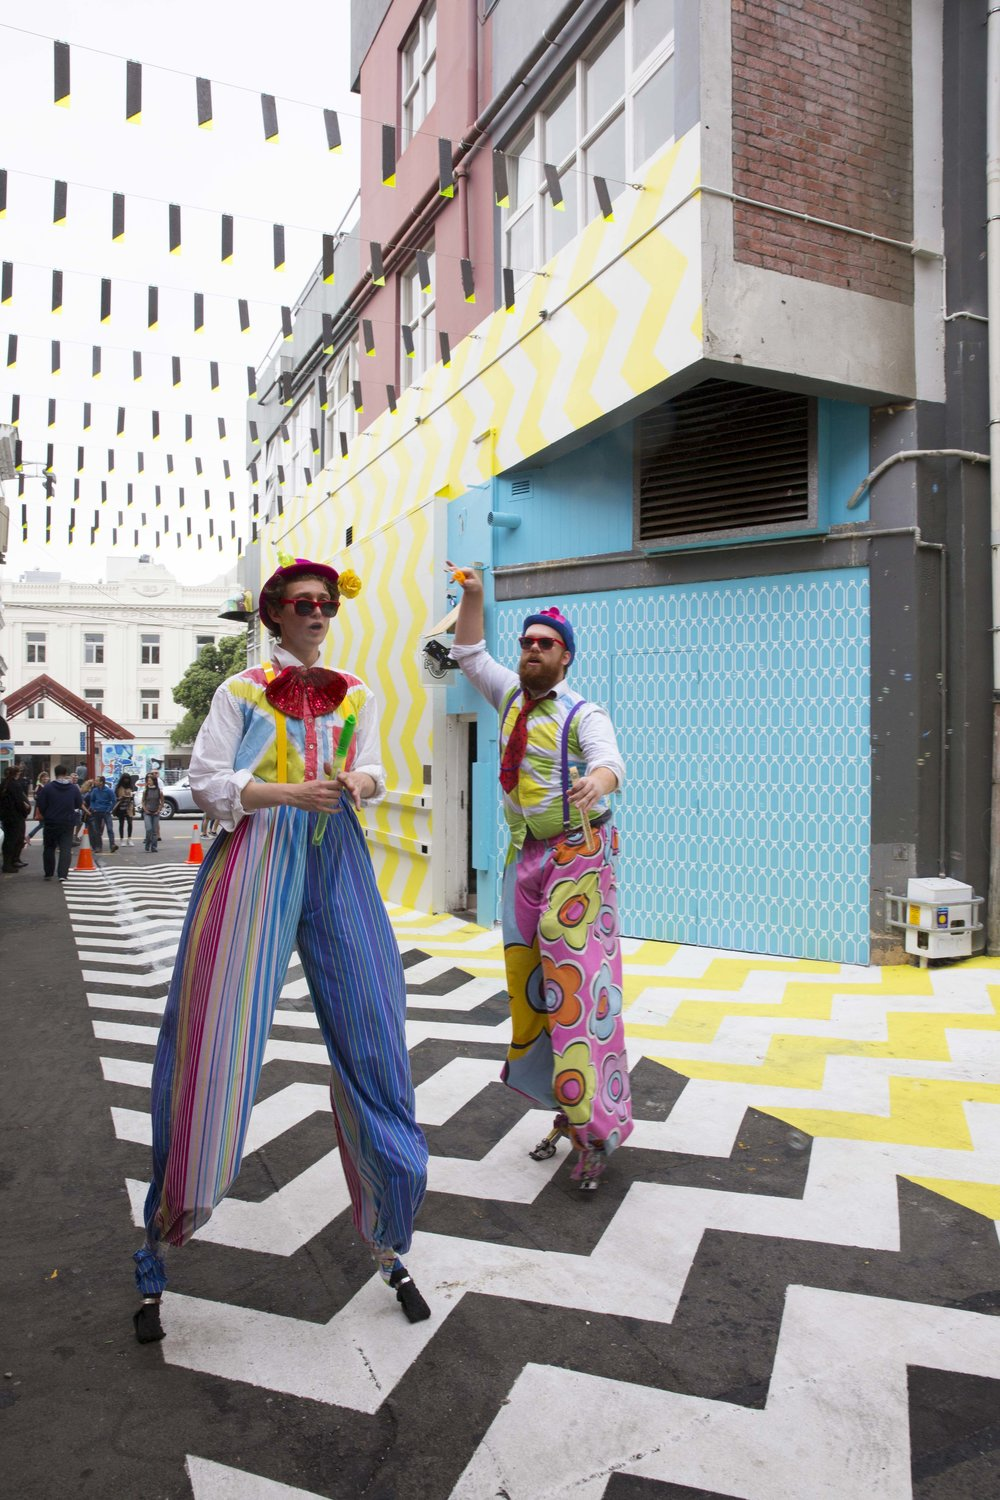 Police say crime is down in the newly revitalised laneways in the capital.